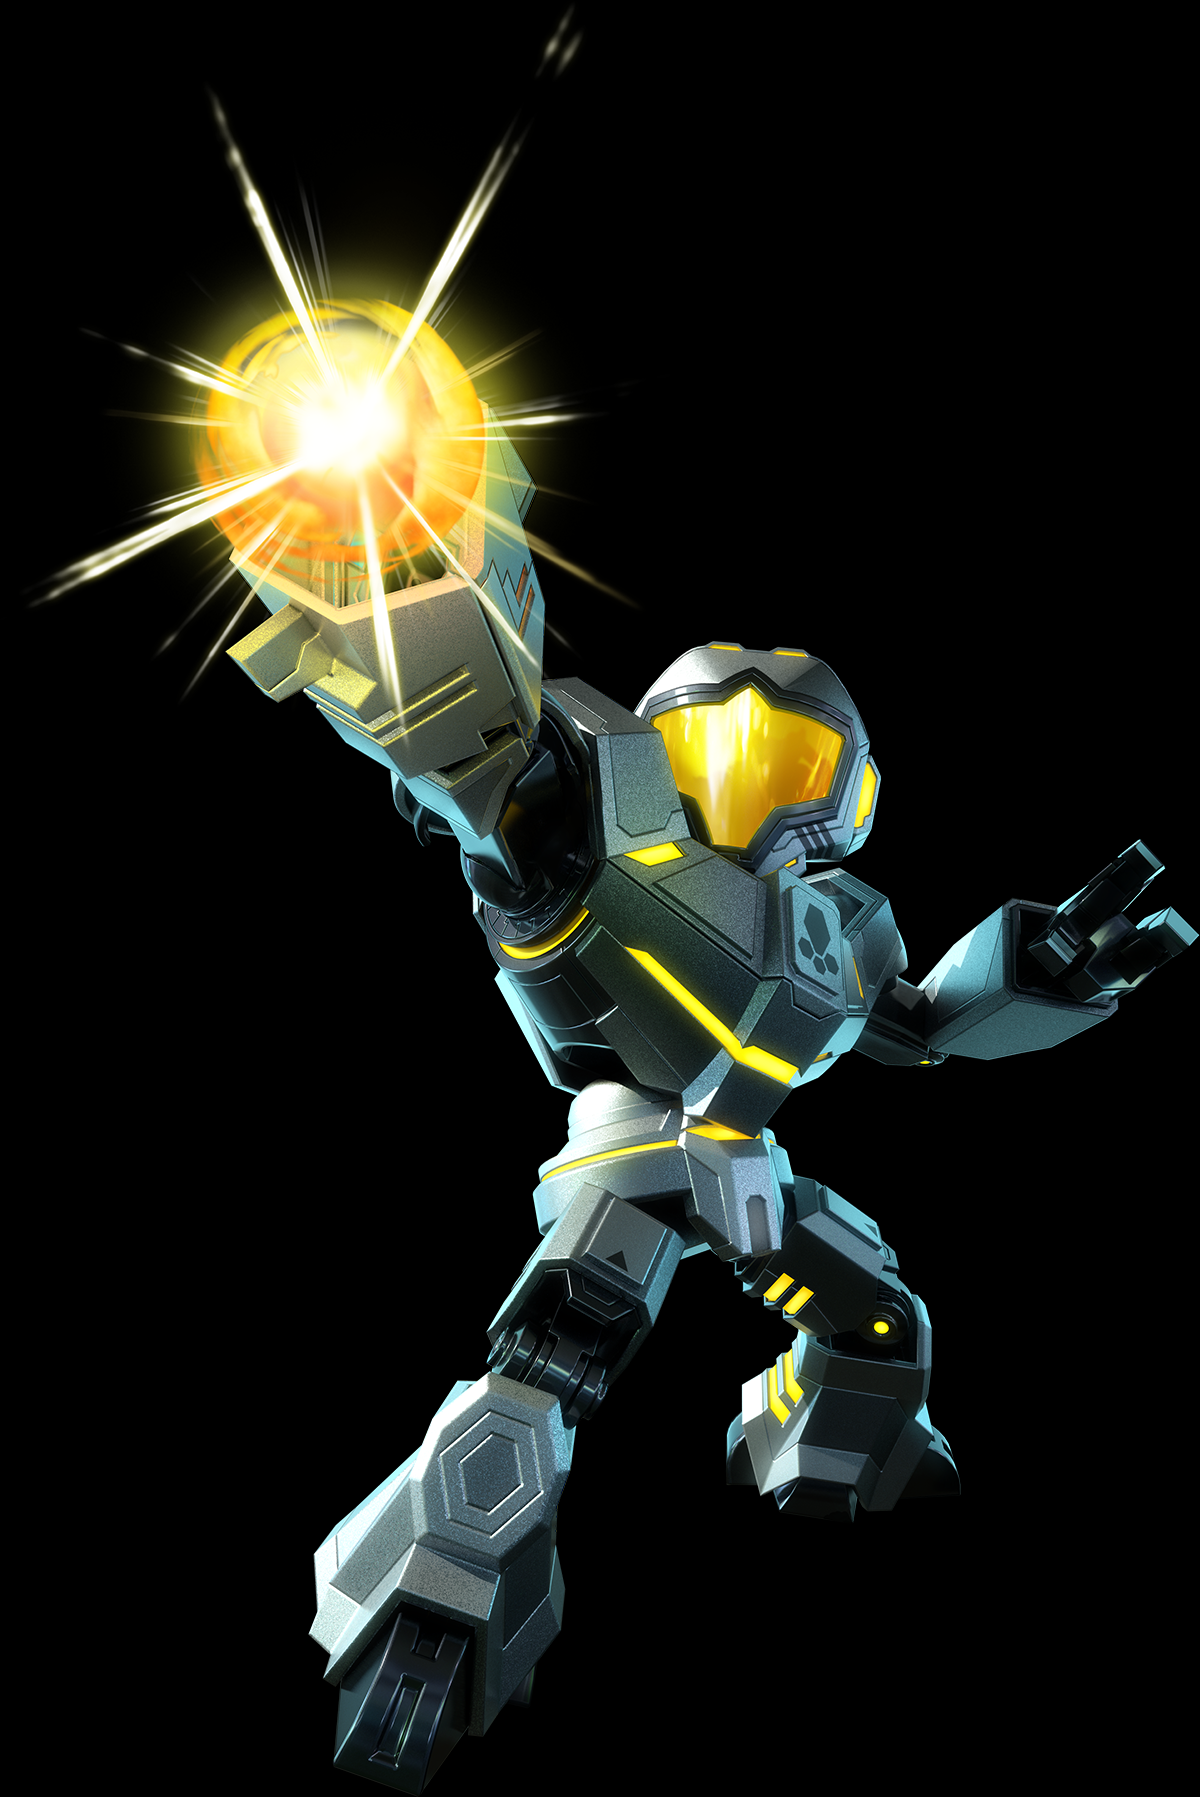 Metroid_Prime_Federation_Force_-_Yellow_Fed_Marine